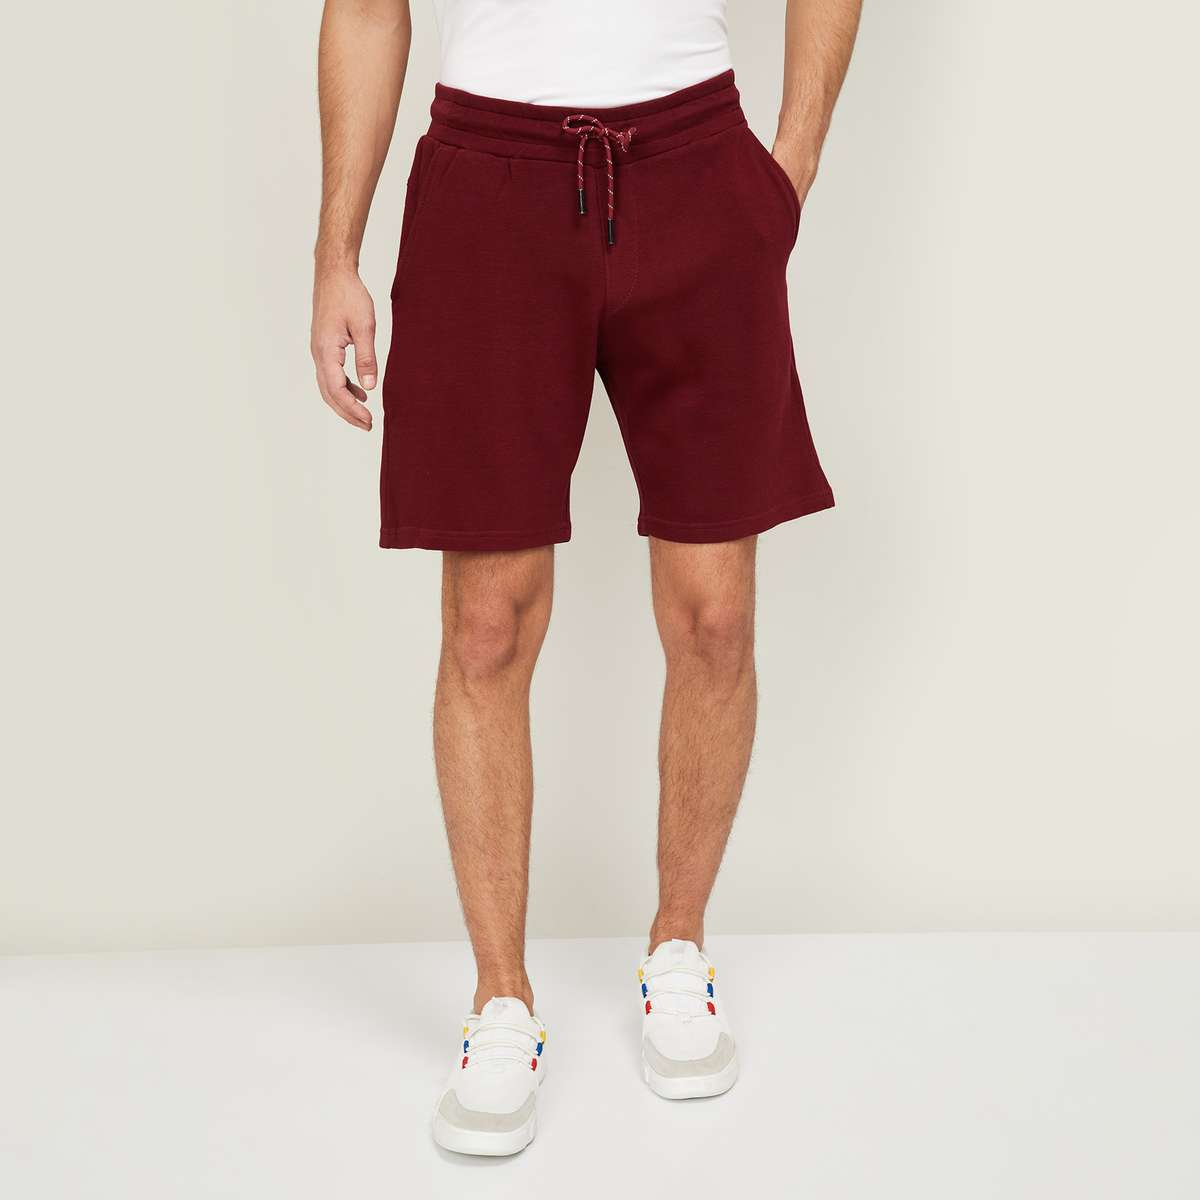 3.LEE COOPER Men Solid Elasticated Shorts